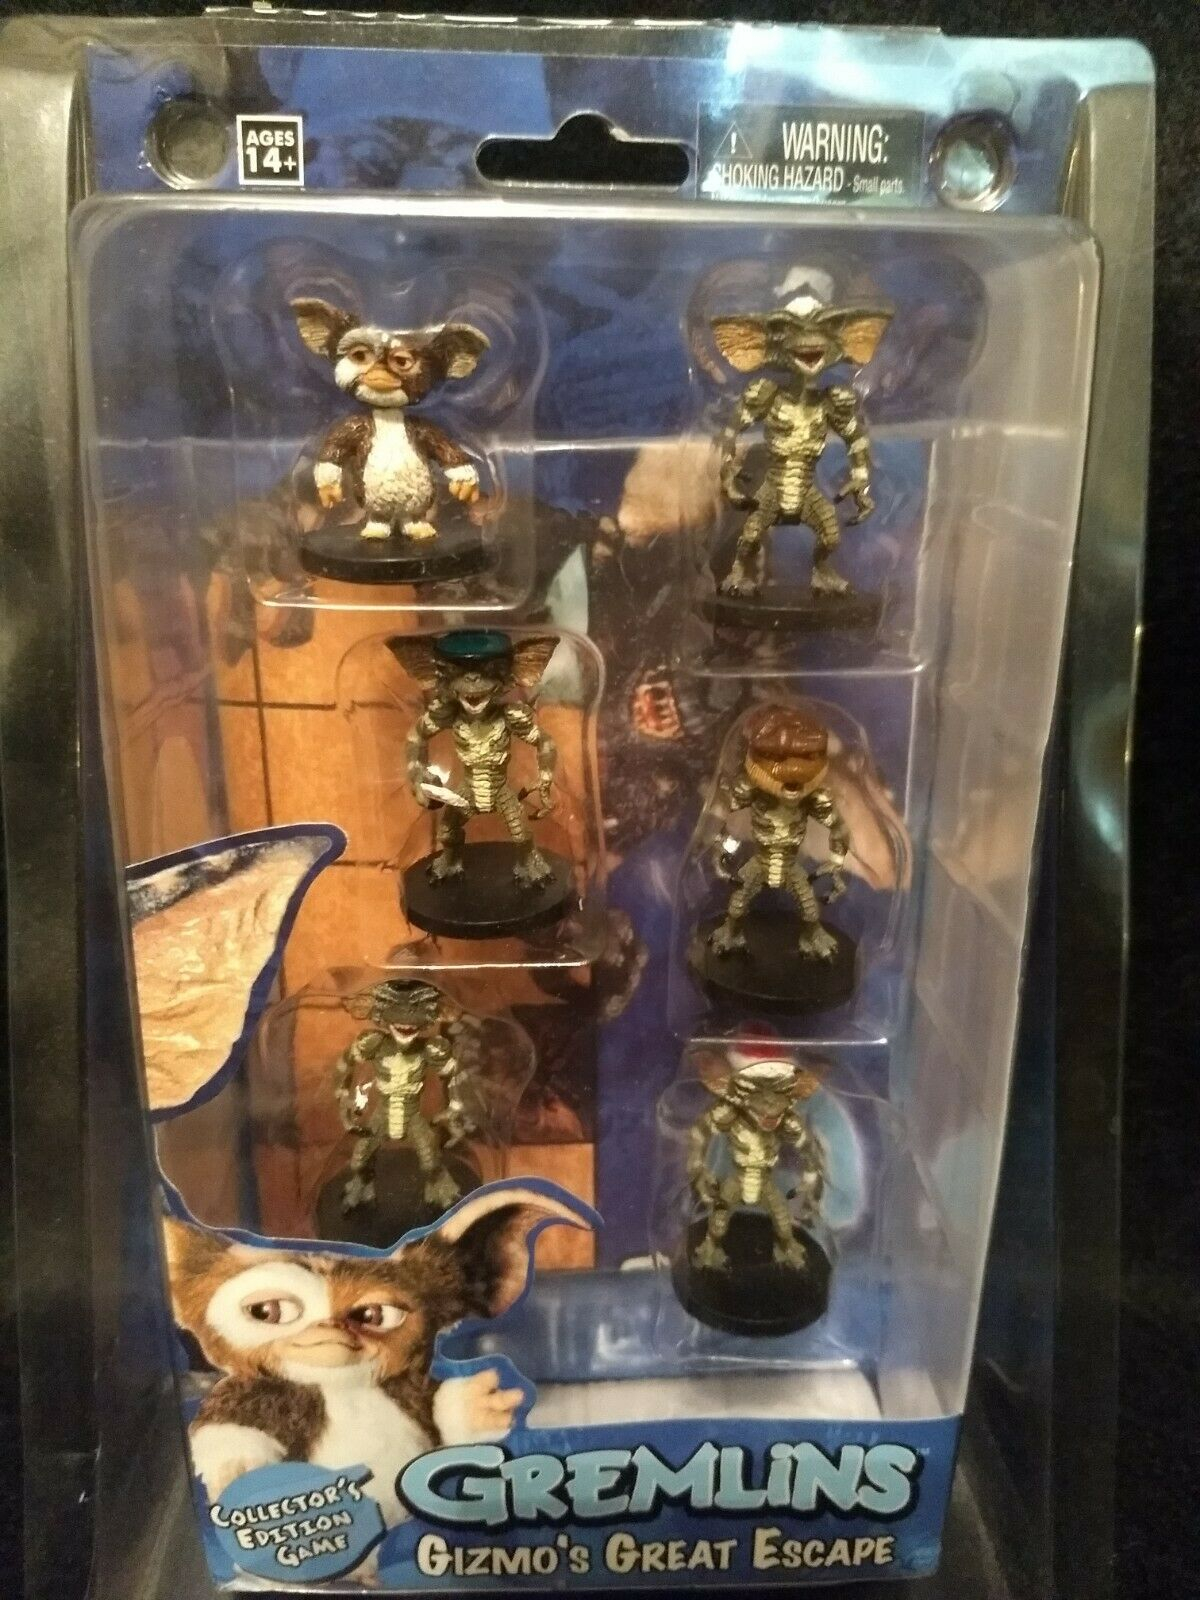 GREMLINS - Gizmo's Great Escape - Collector's Edition Game (OUT OF PRINT)